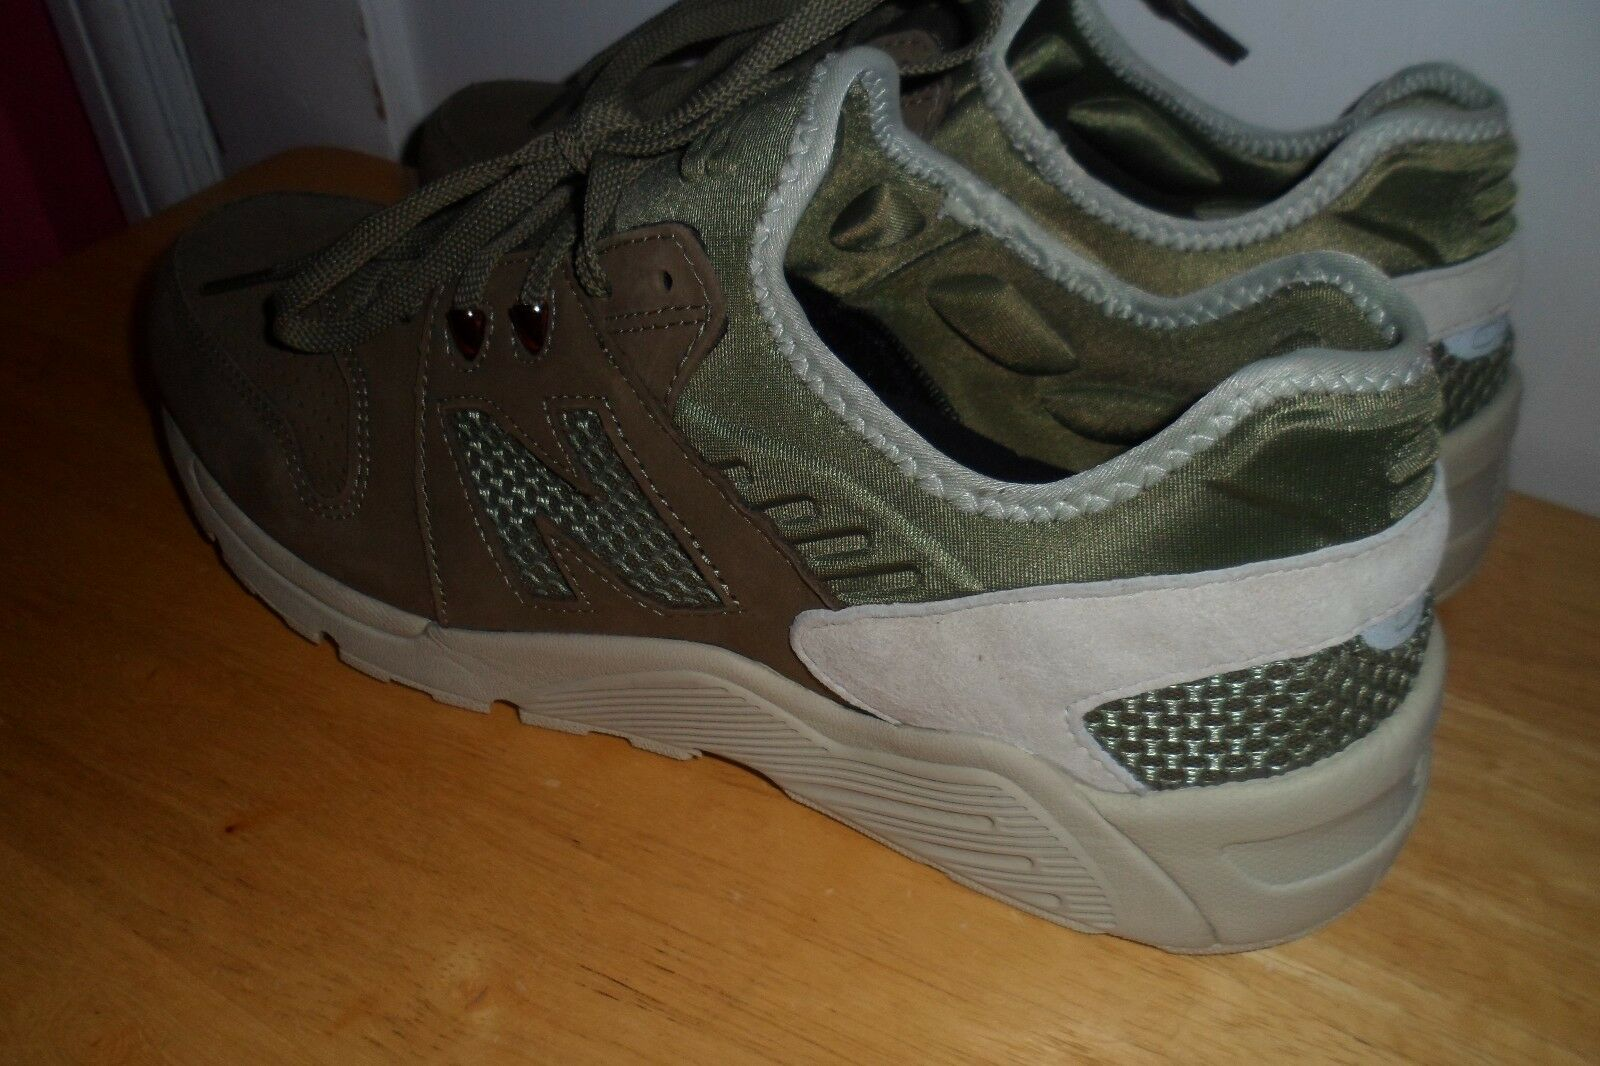 MUST SEE FABULOUS  99.99 2016 New Balance 009 ML009SCA Uomo 12 D WORN 1 TIME